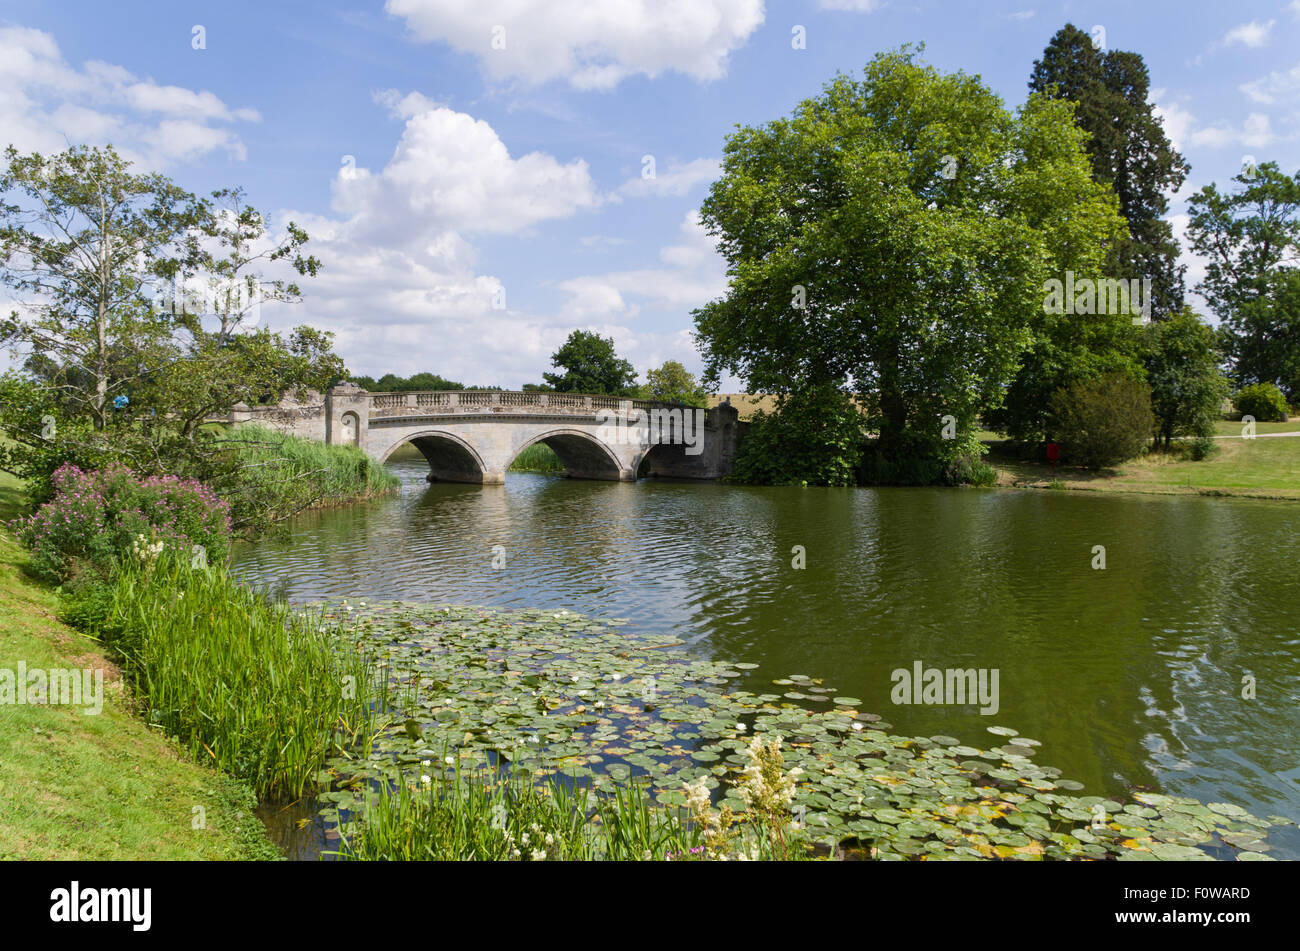 A three arched stone bridge going over the lake at Compton Verney House, Warwickshire, UK - Stock Image